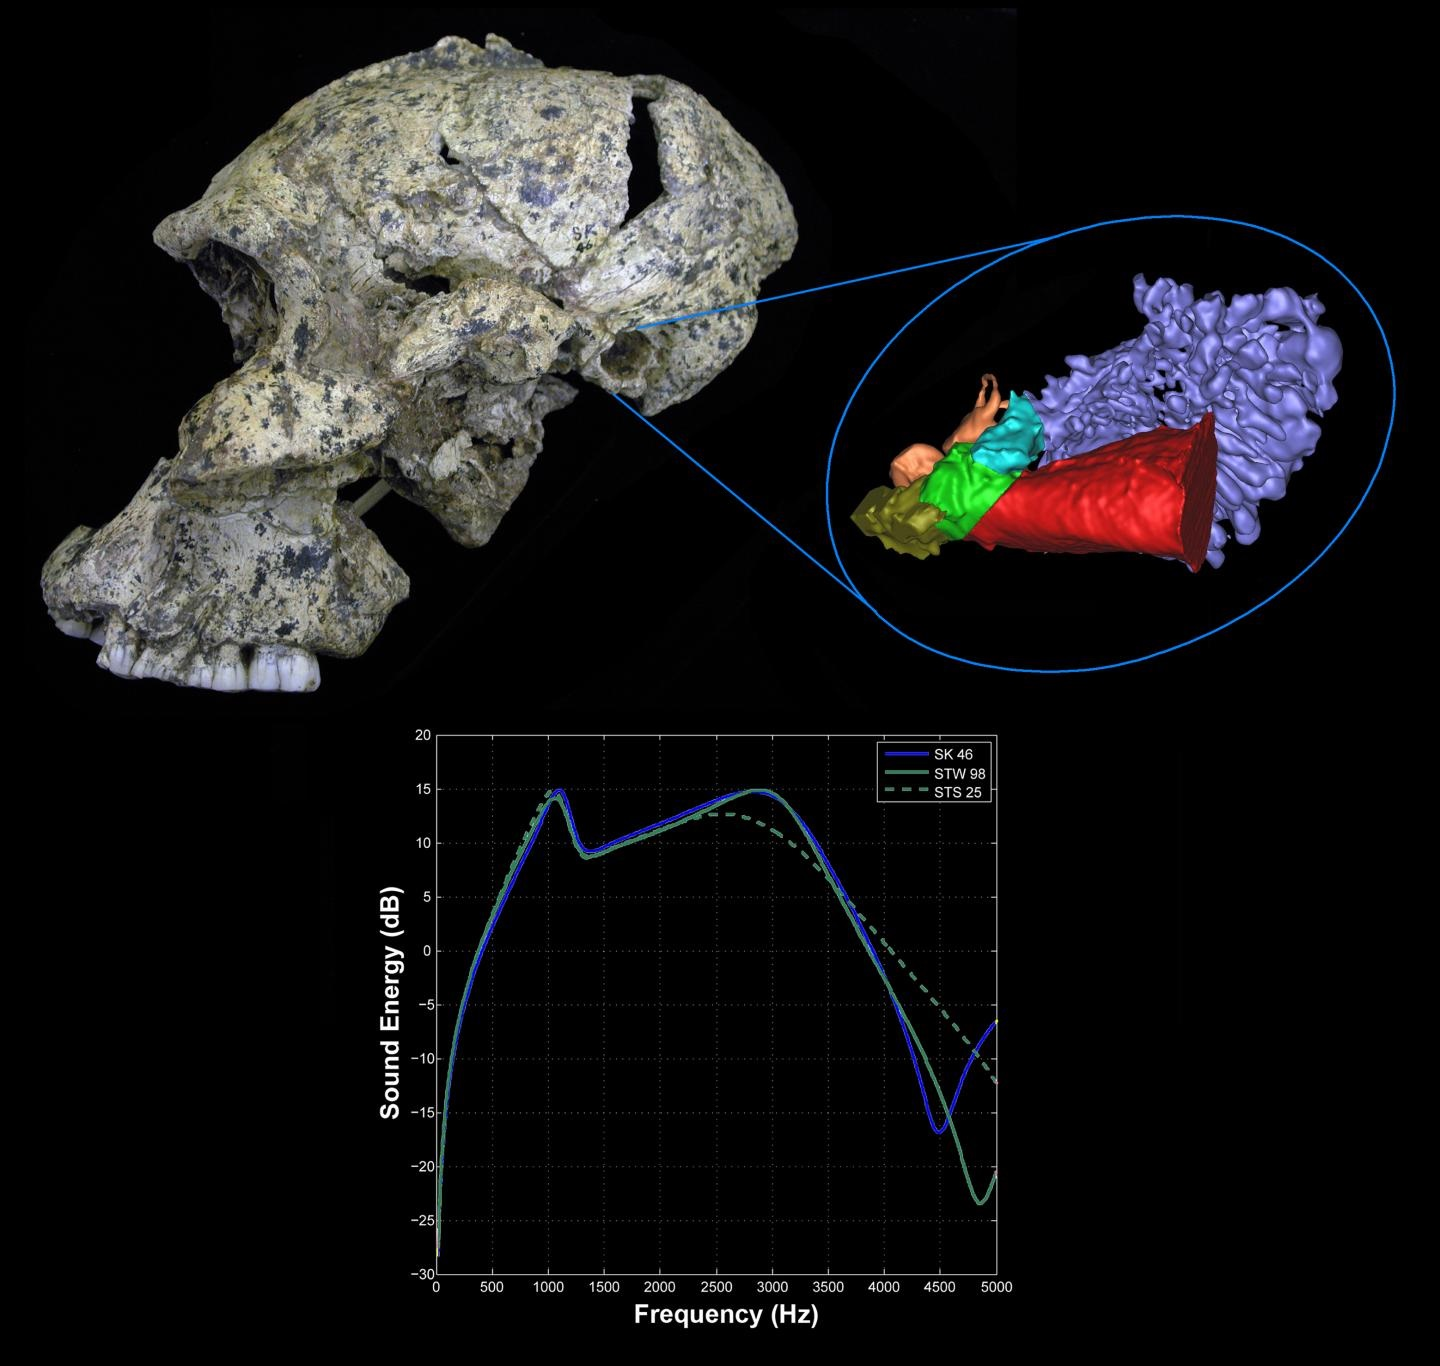 This is a lateral view of the Paranthropus robustus skull SK 46 from the site of Swartkrans, South Africa showing the 3-D virtual reconstruction of the ear and the hearing results for the early hominins. CREDIT : Rolf Quam